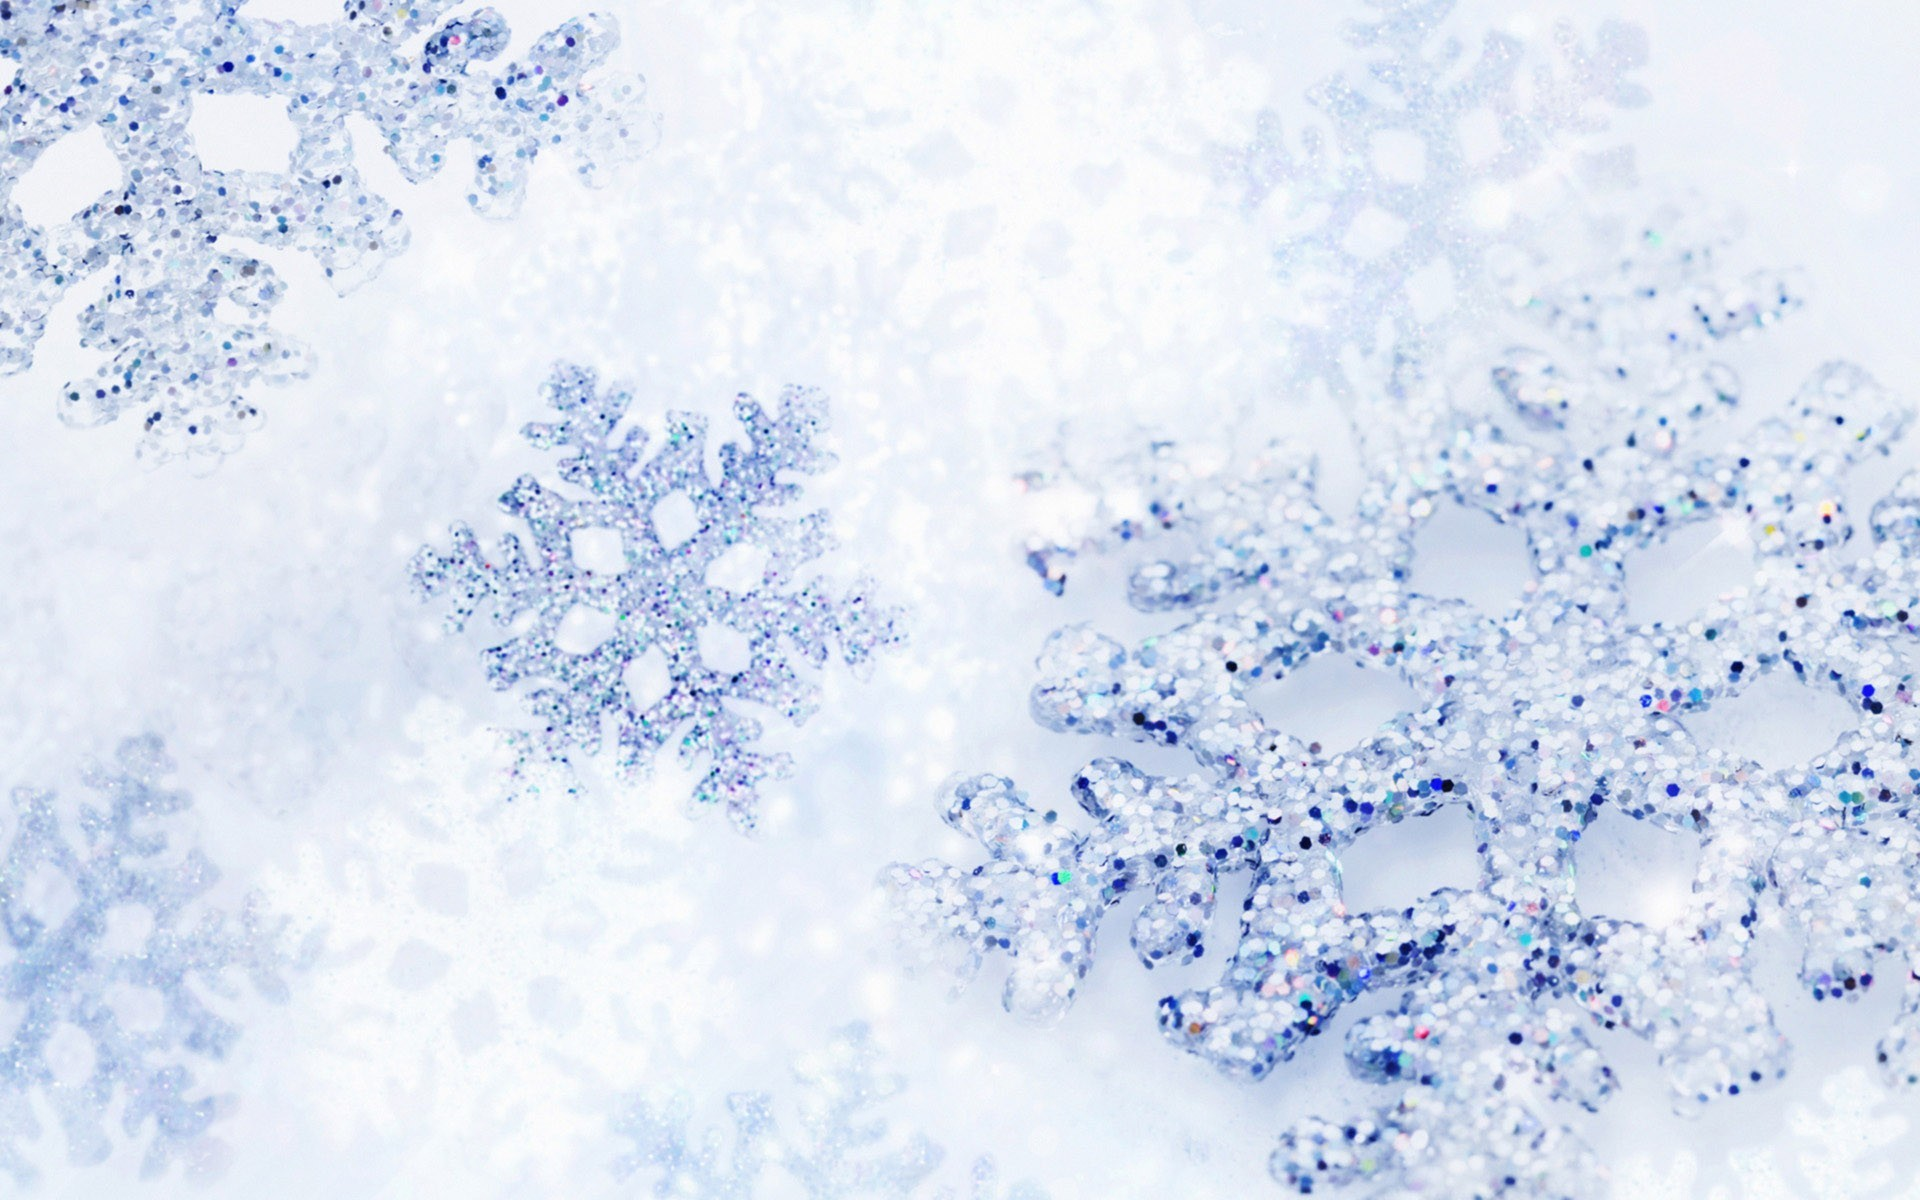 Christmas Snow Background for Wallpaper 1920x1200px